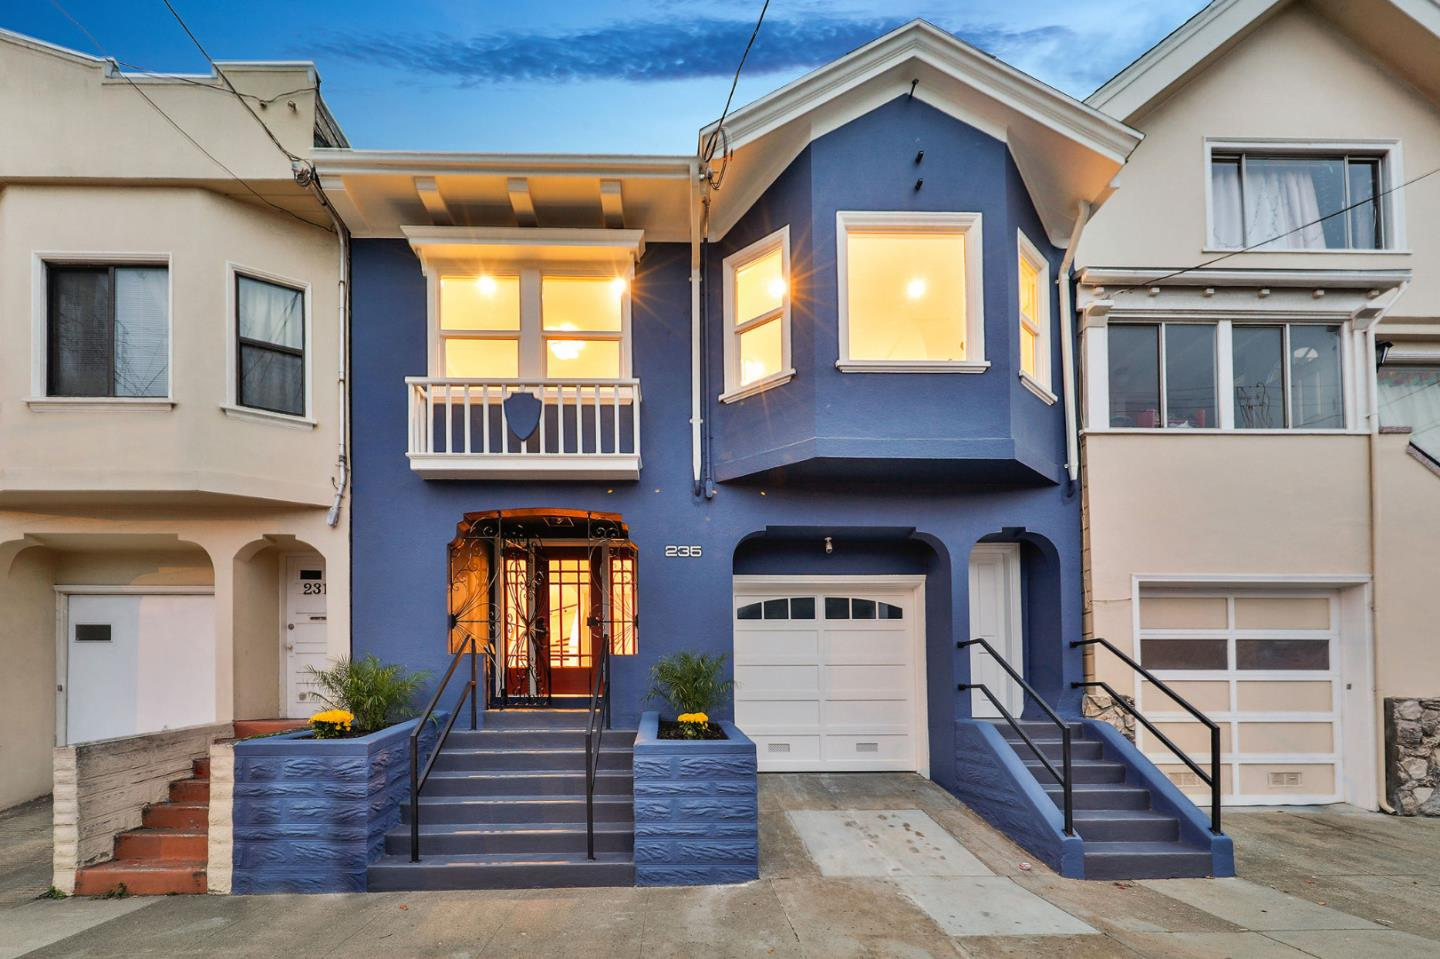 Image for 235 London Street, <br>San Francisco 94112